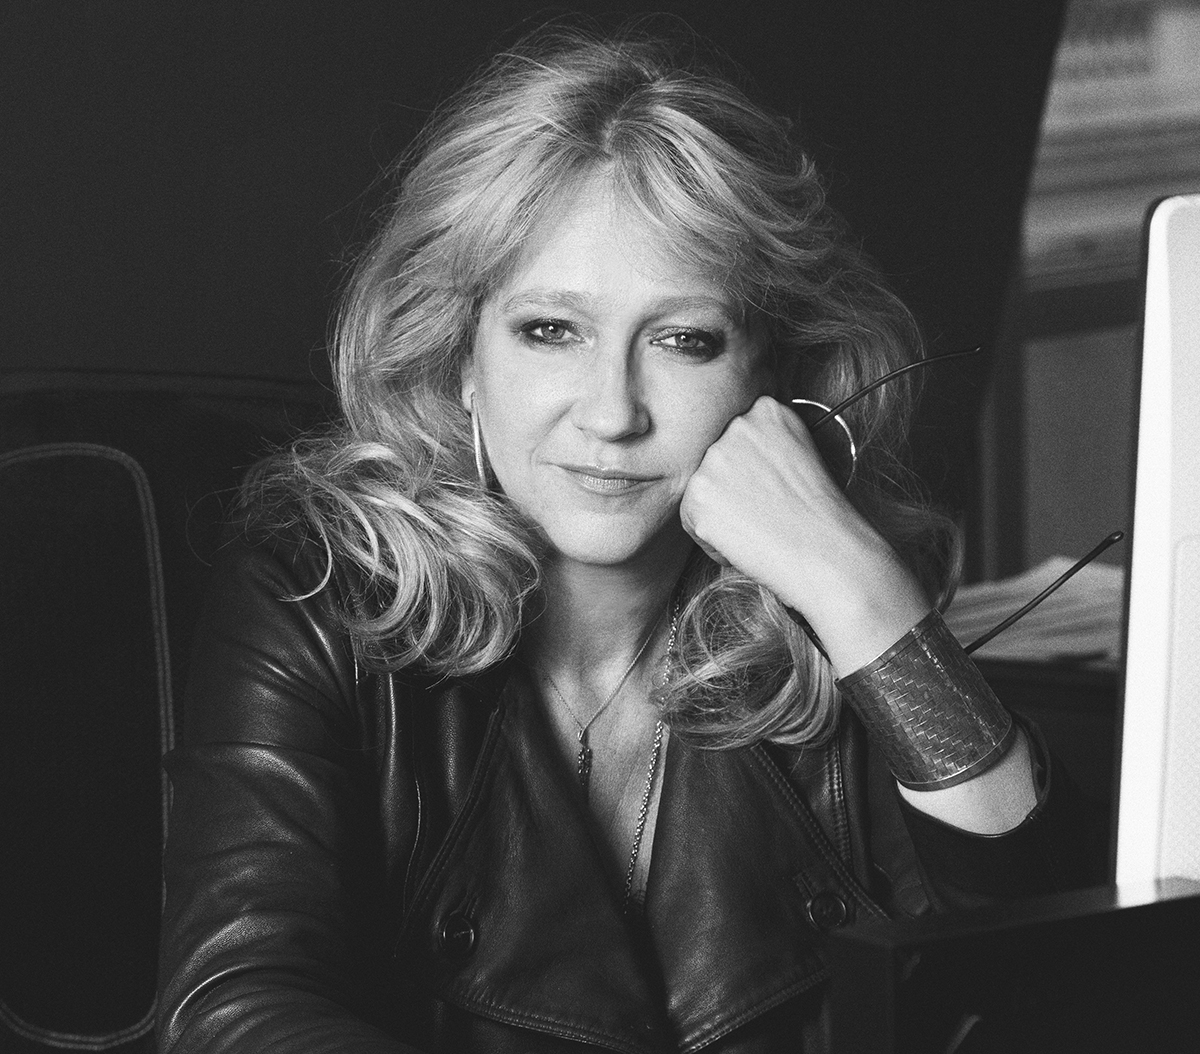 Theatre producer Sonia Friedman: 'I was making shows happen. Then I had to tear them apart.'